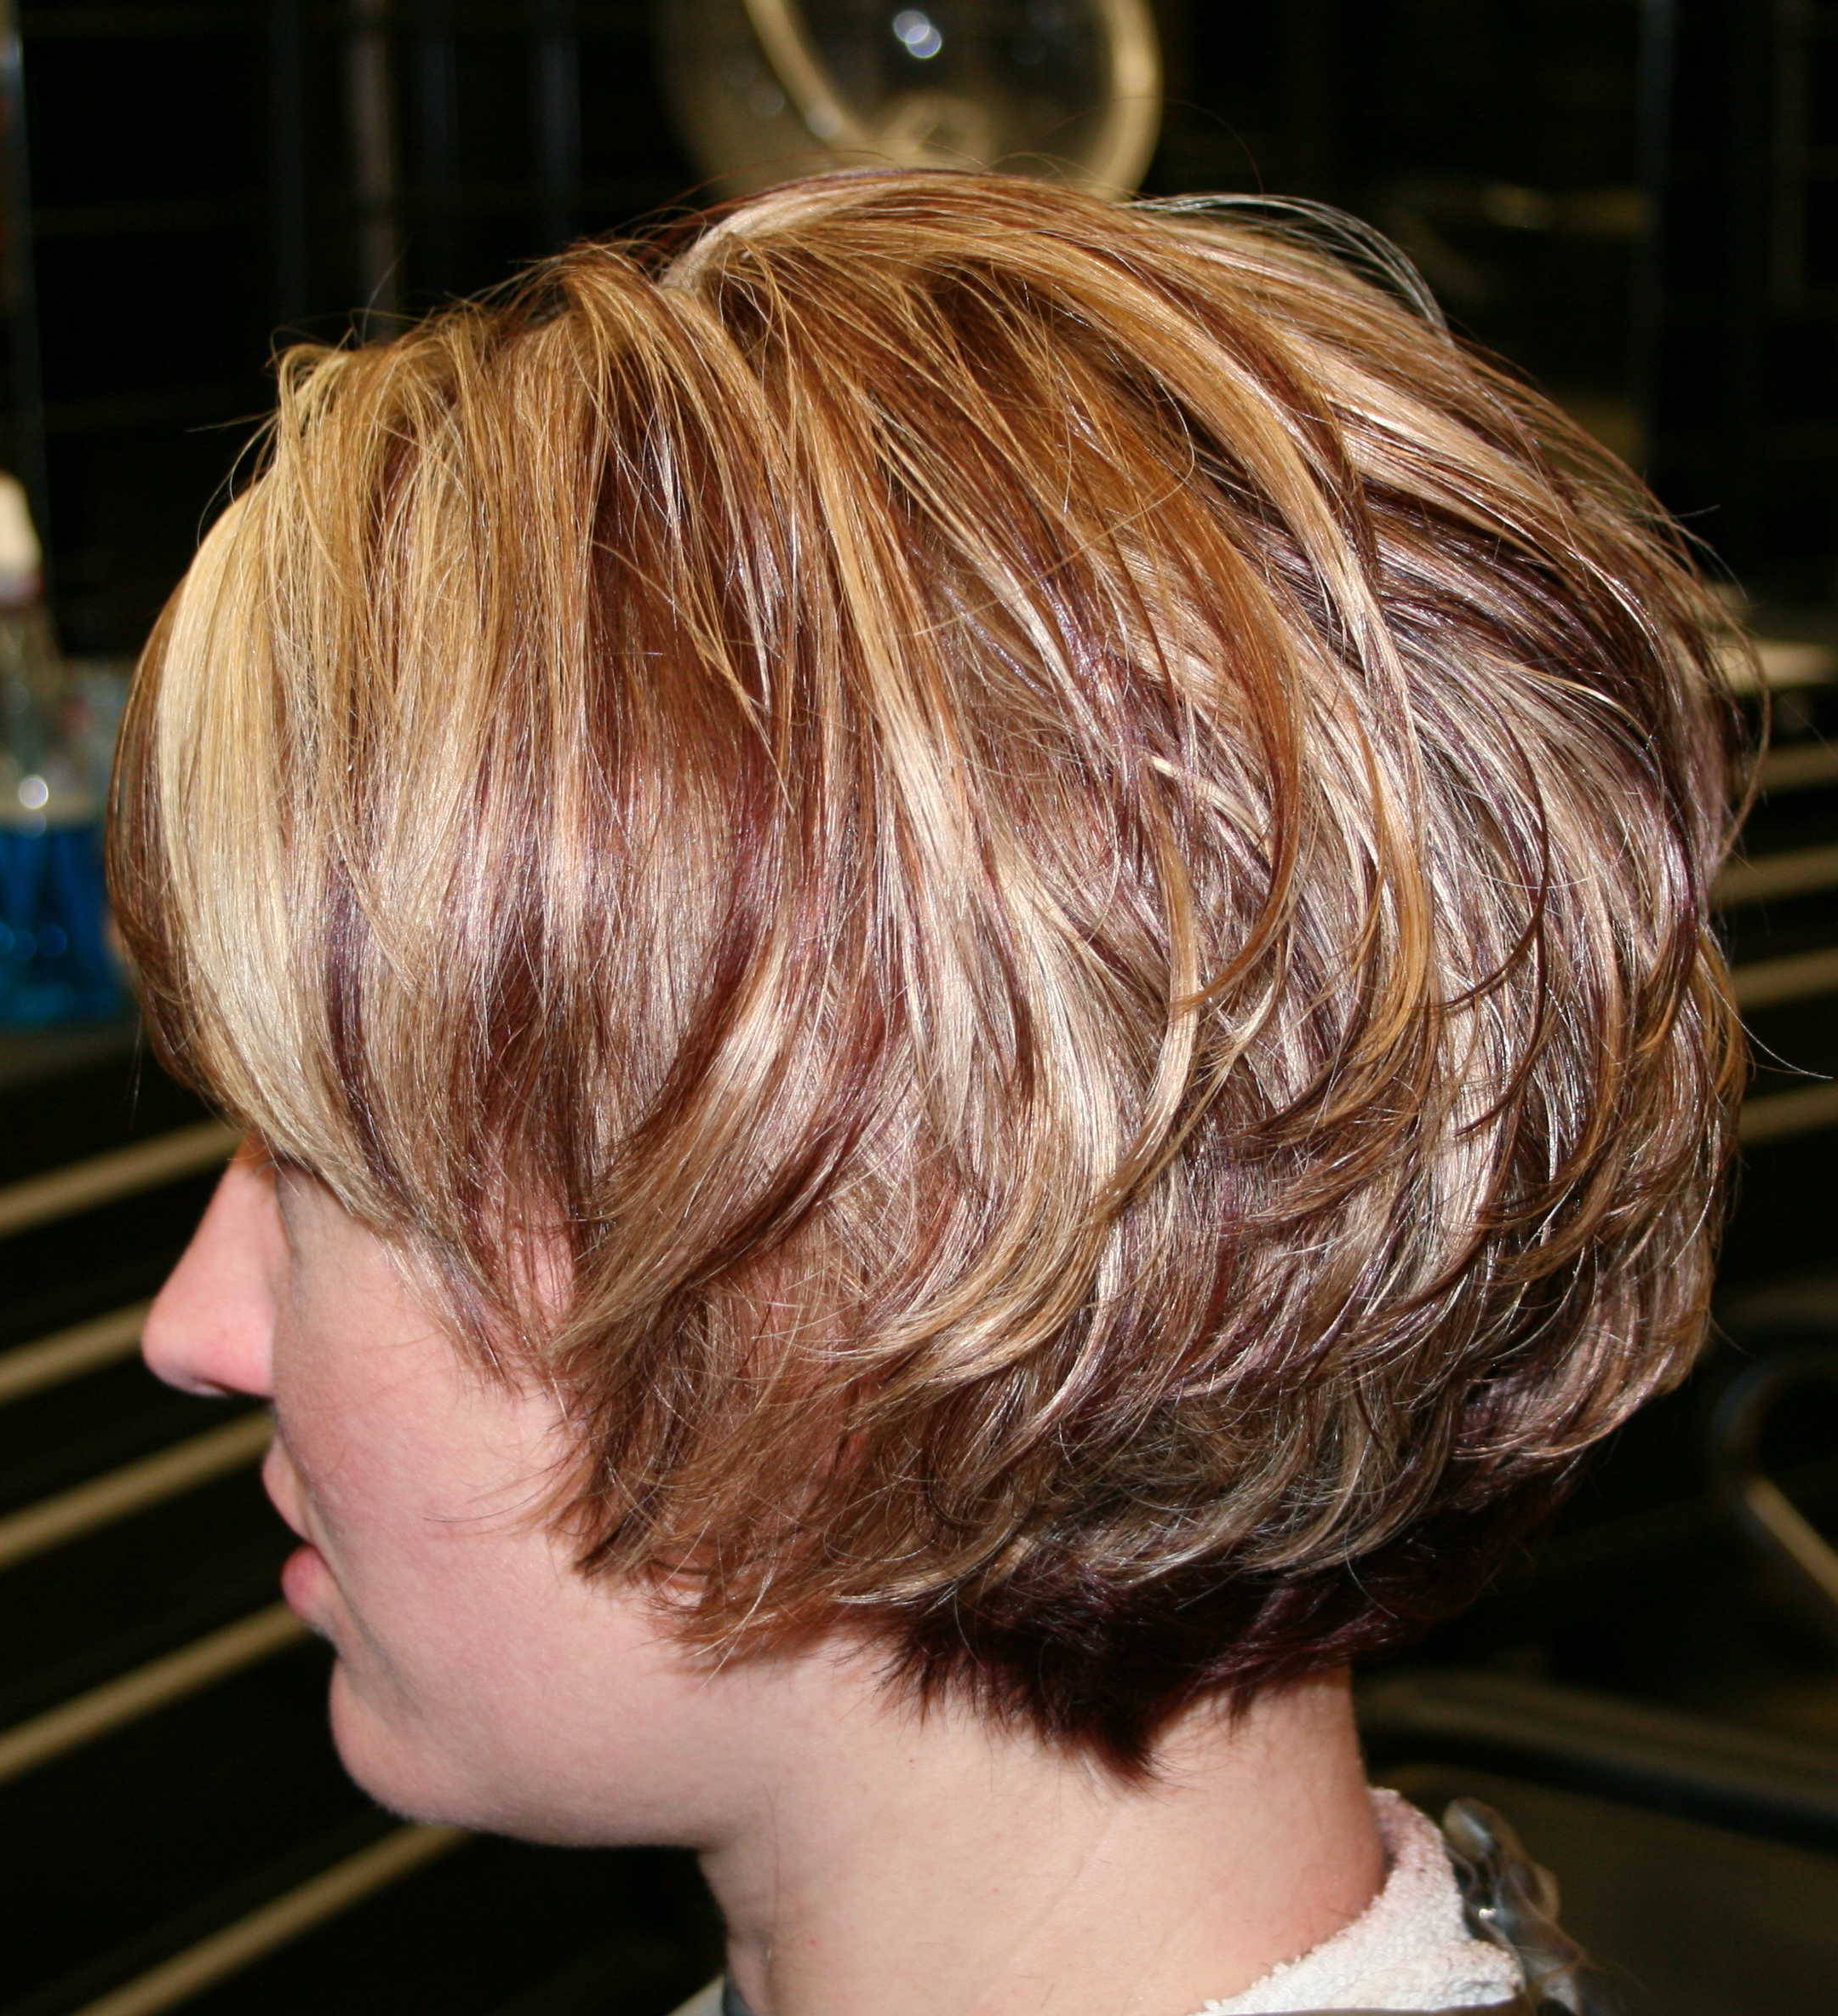 Long And Short Layered Hairstyles For Short Layered Hairstyles (View 7 of 20)